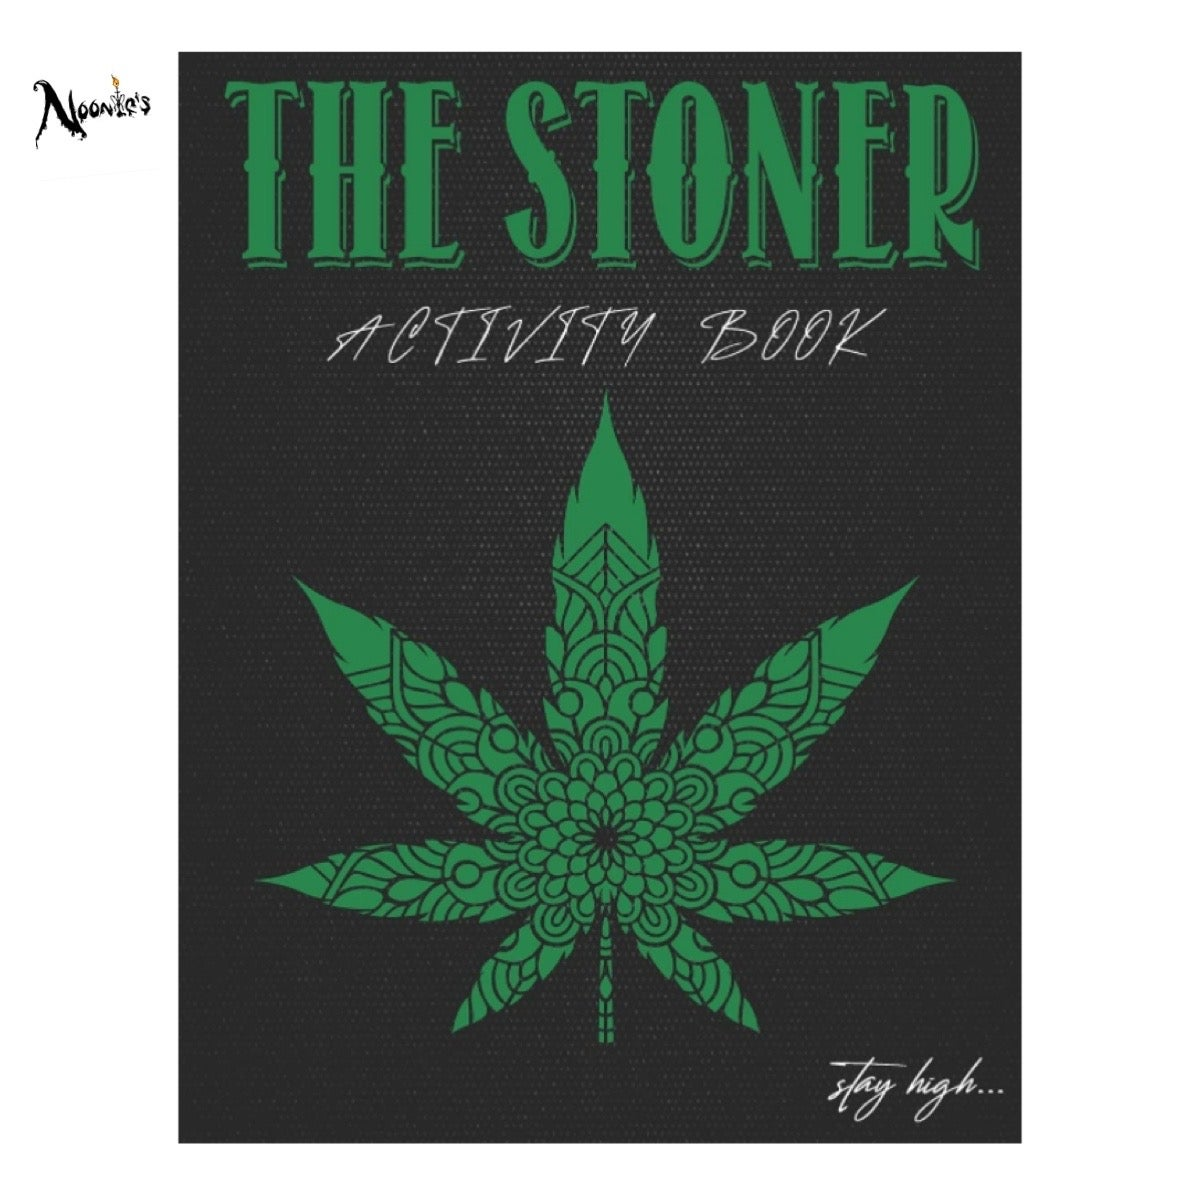 Image of Productive stoner activity book